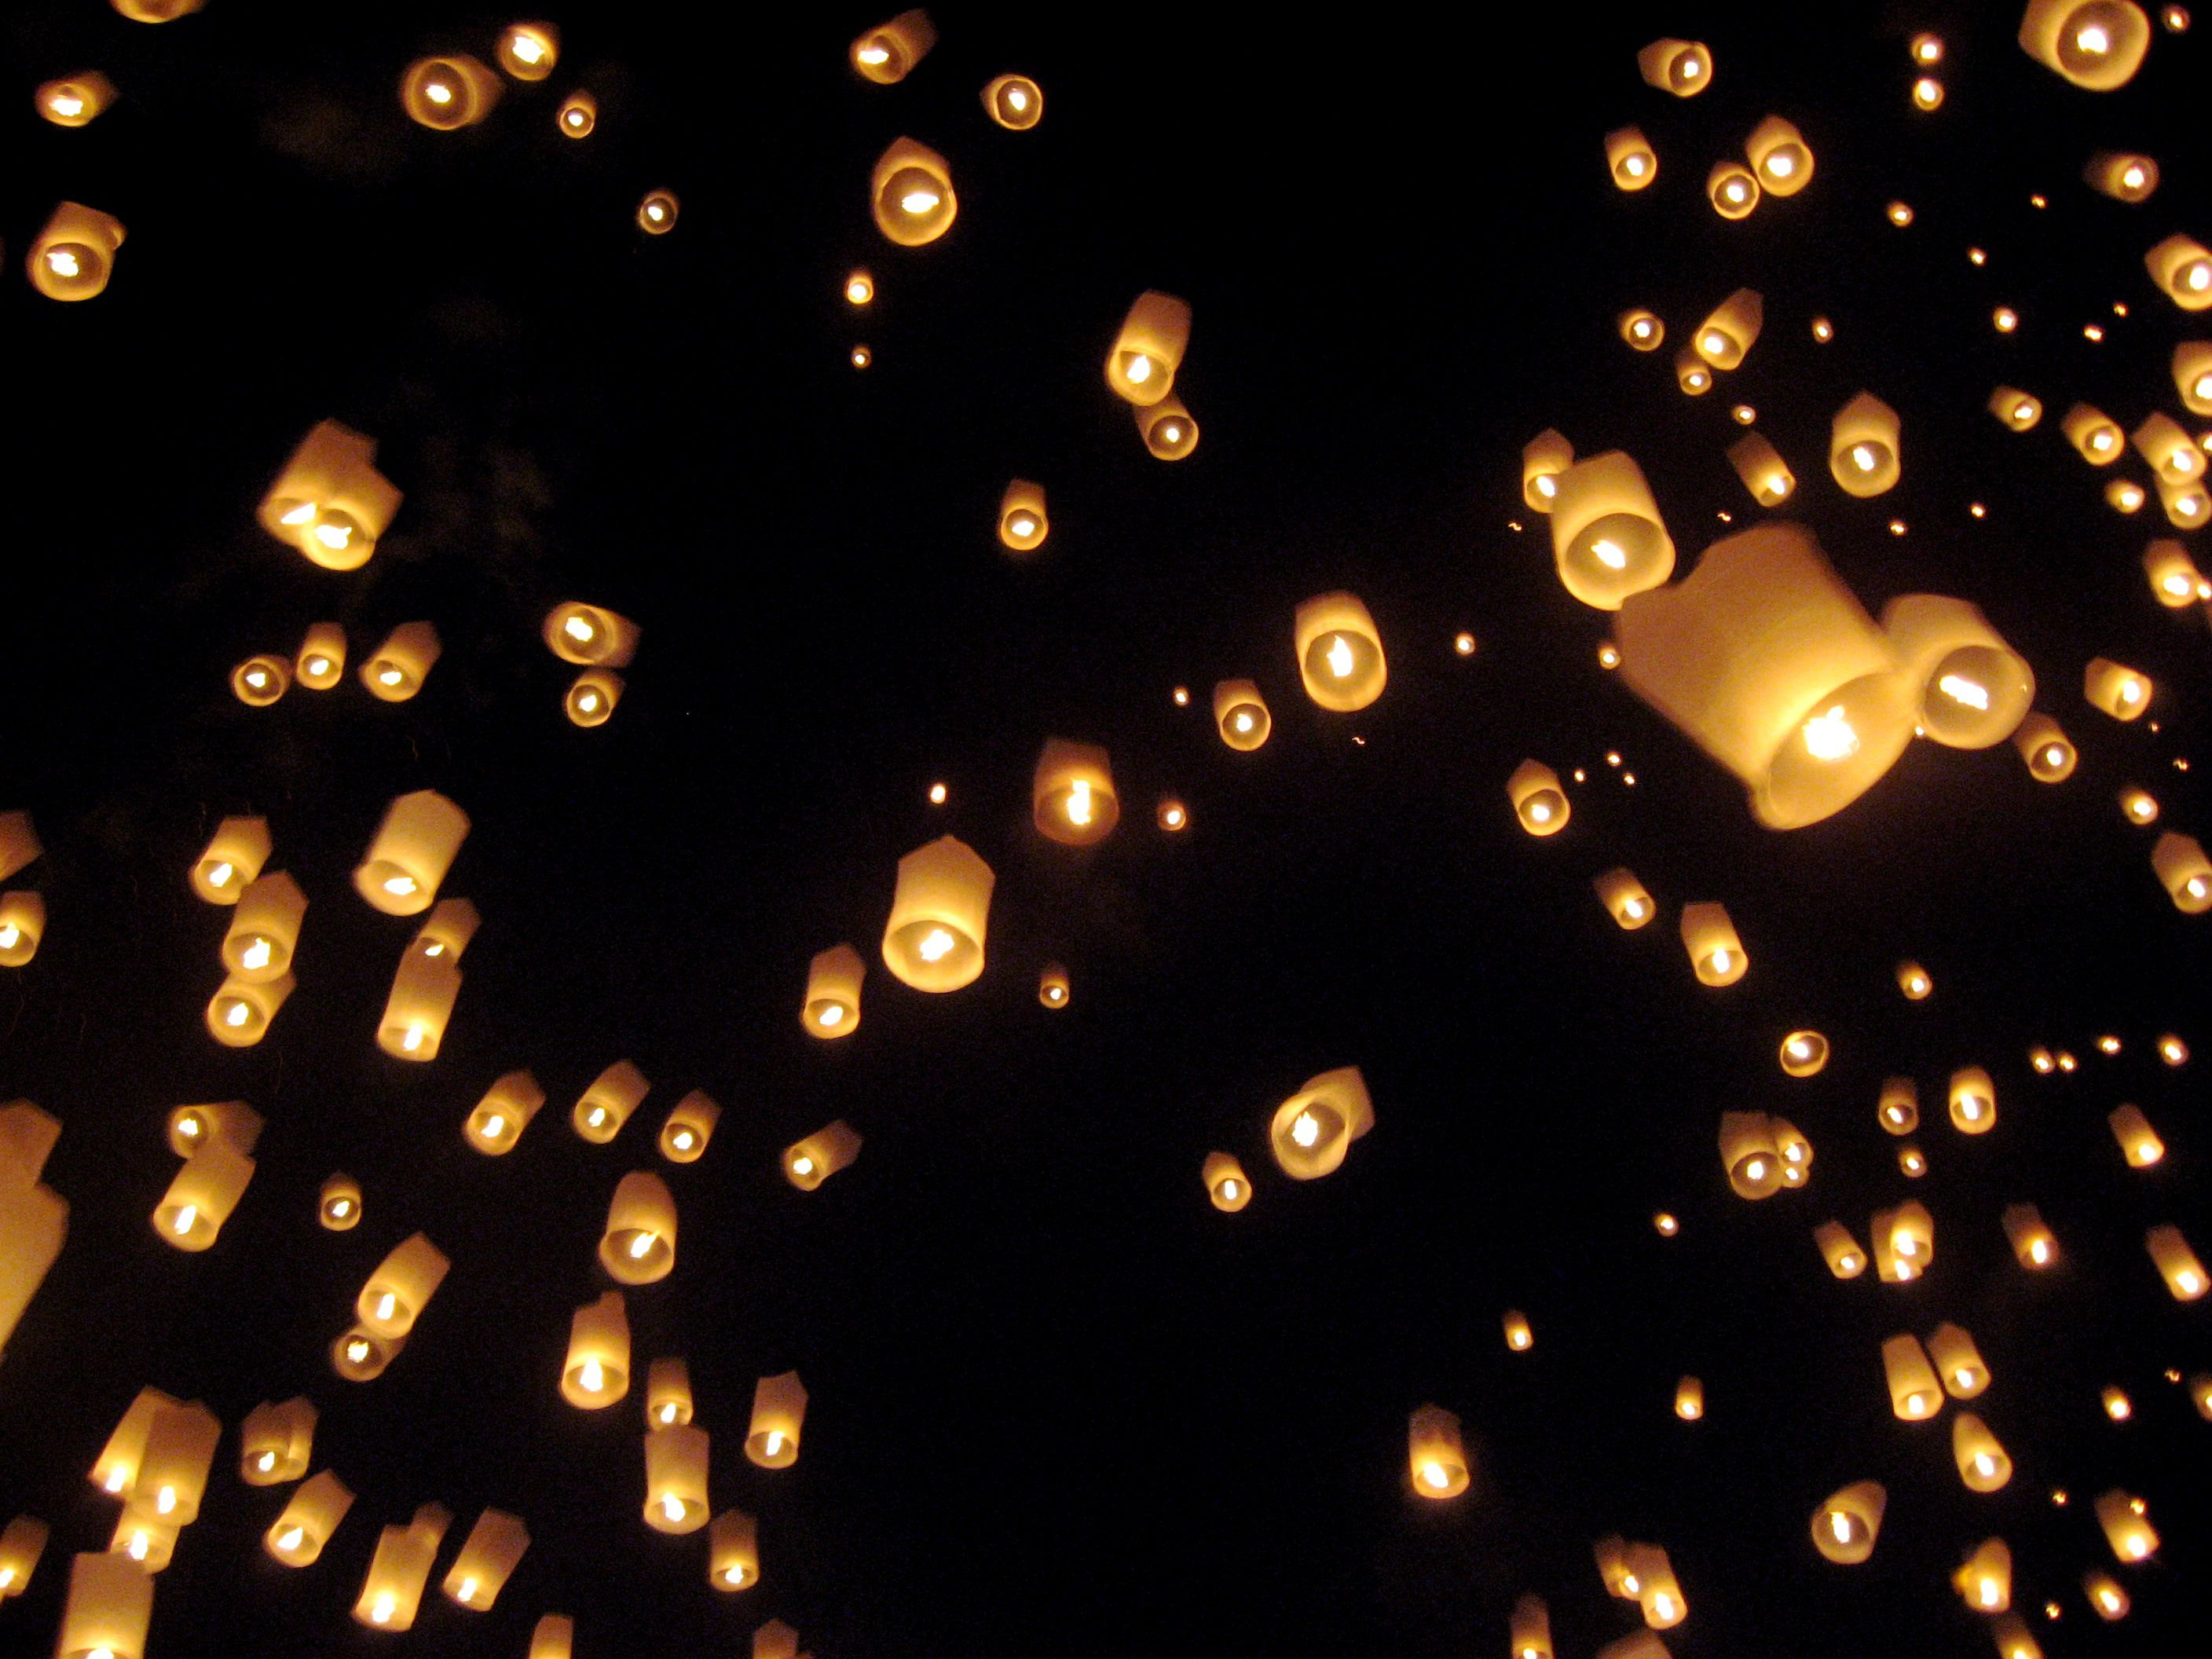 The scene in the Disney movie Tangled where hundreds of paper lanterns are released is the most romantic cartoon scene ever.